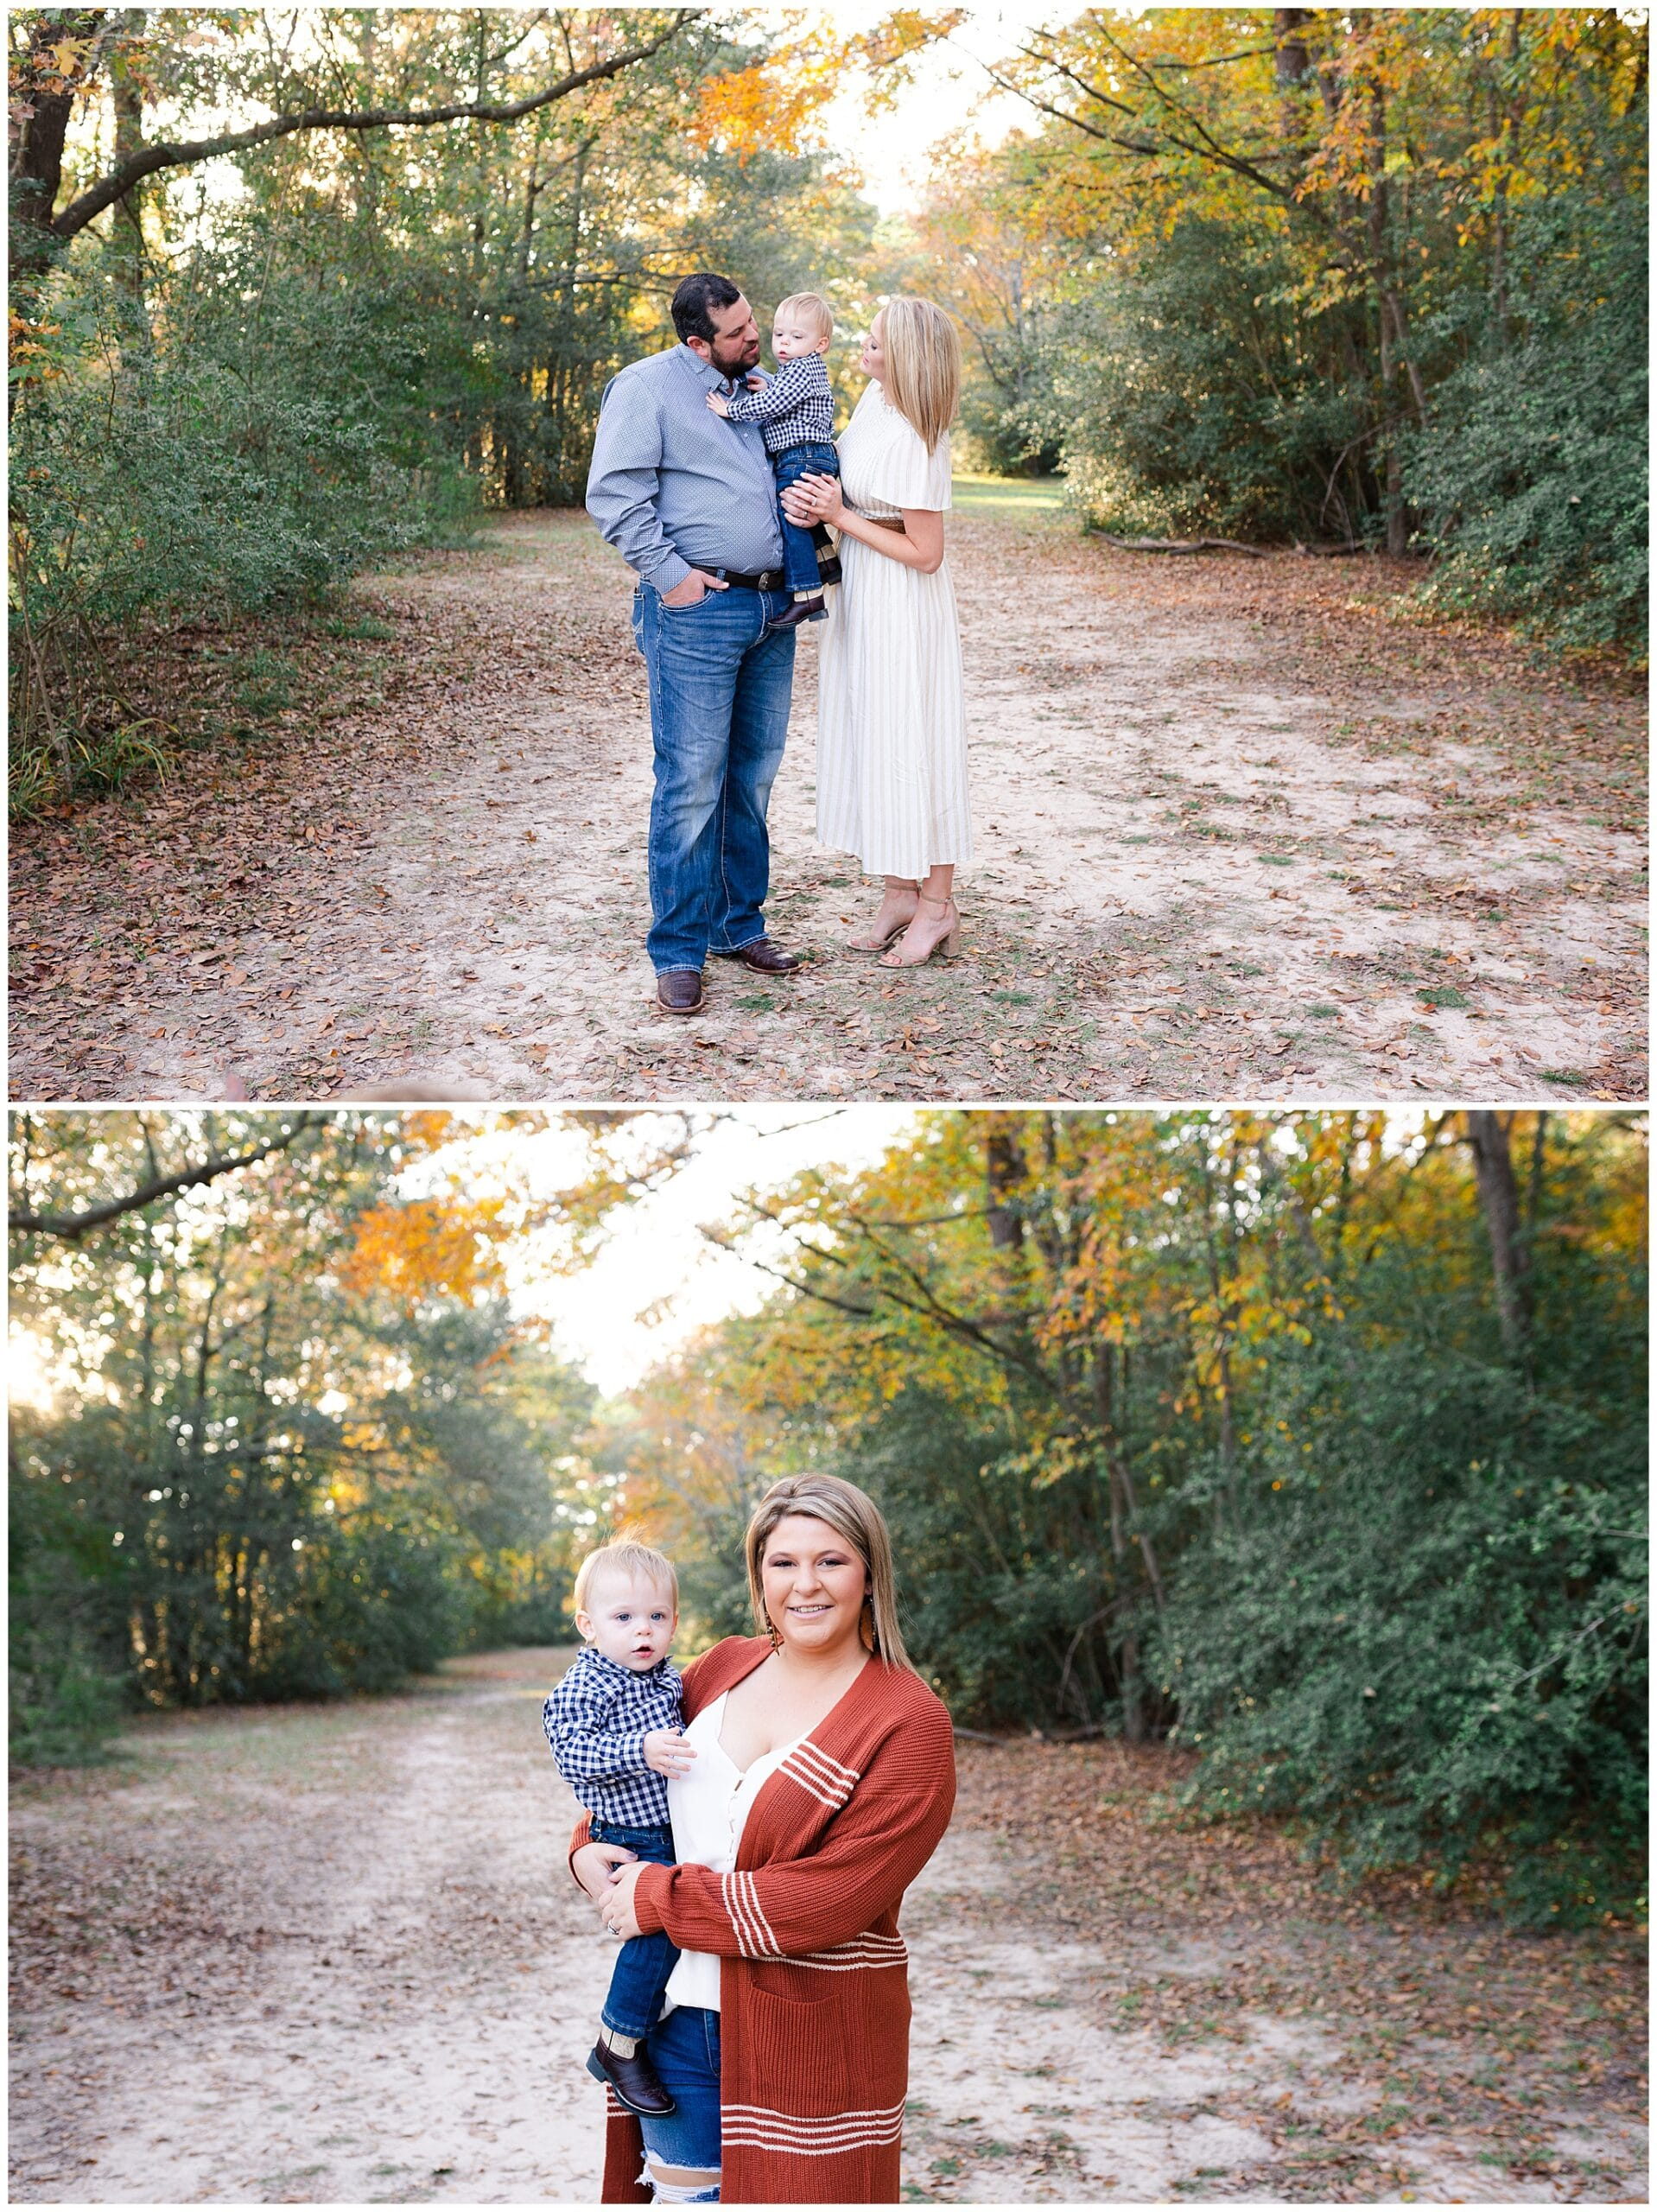 aunt and nephew getting portraits taken at Kickerillo-Mischer Preserve by Swish and Click Photography